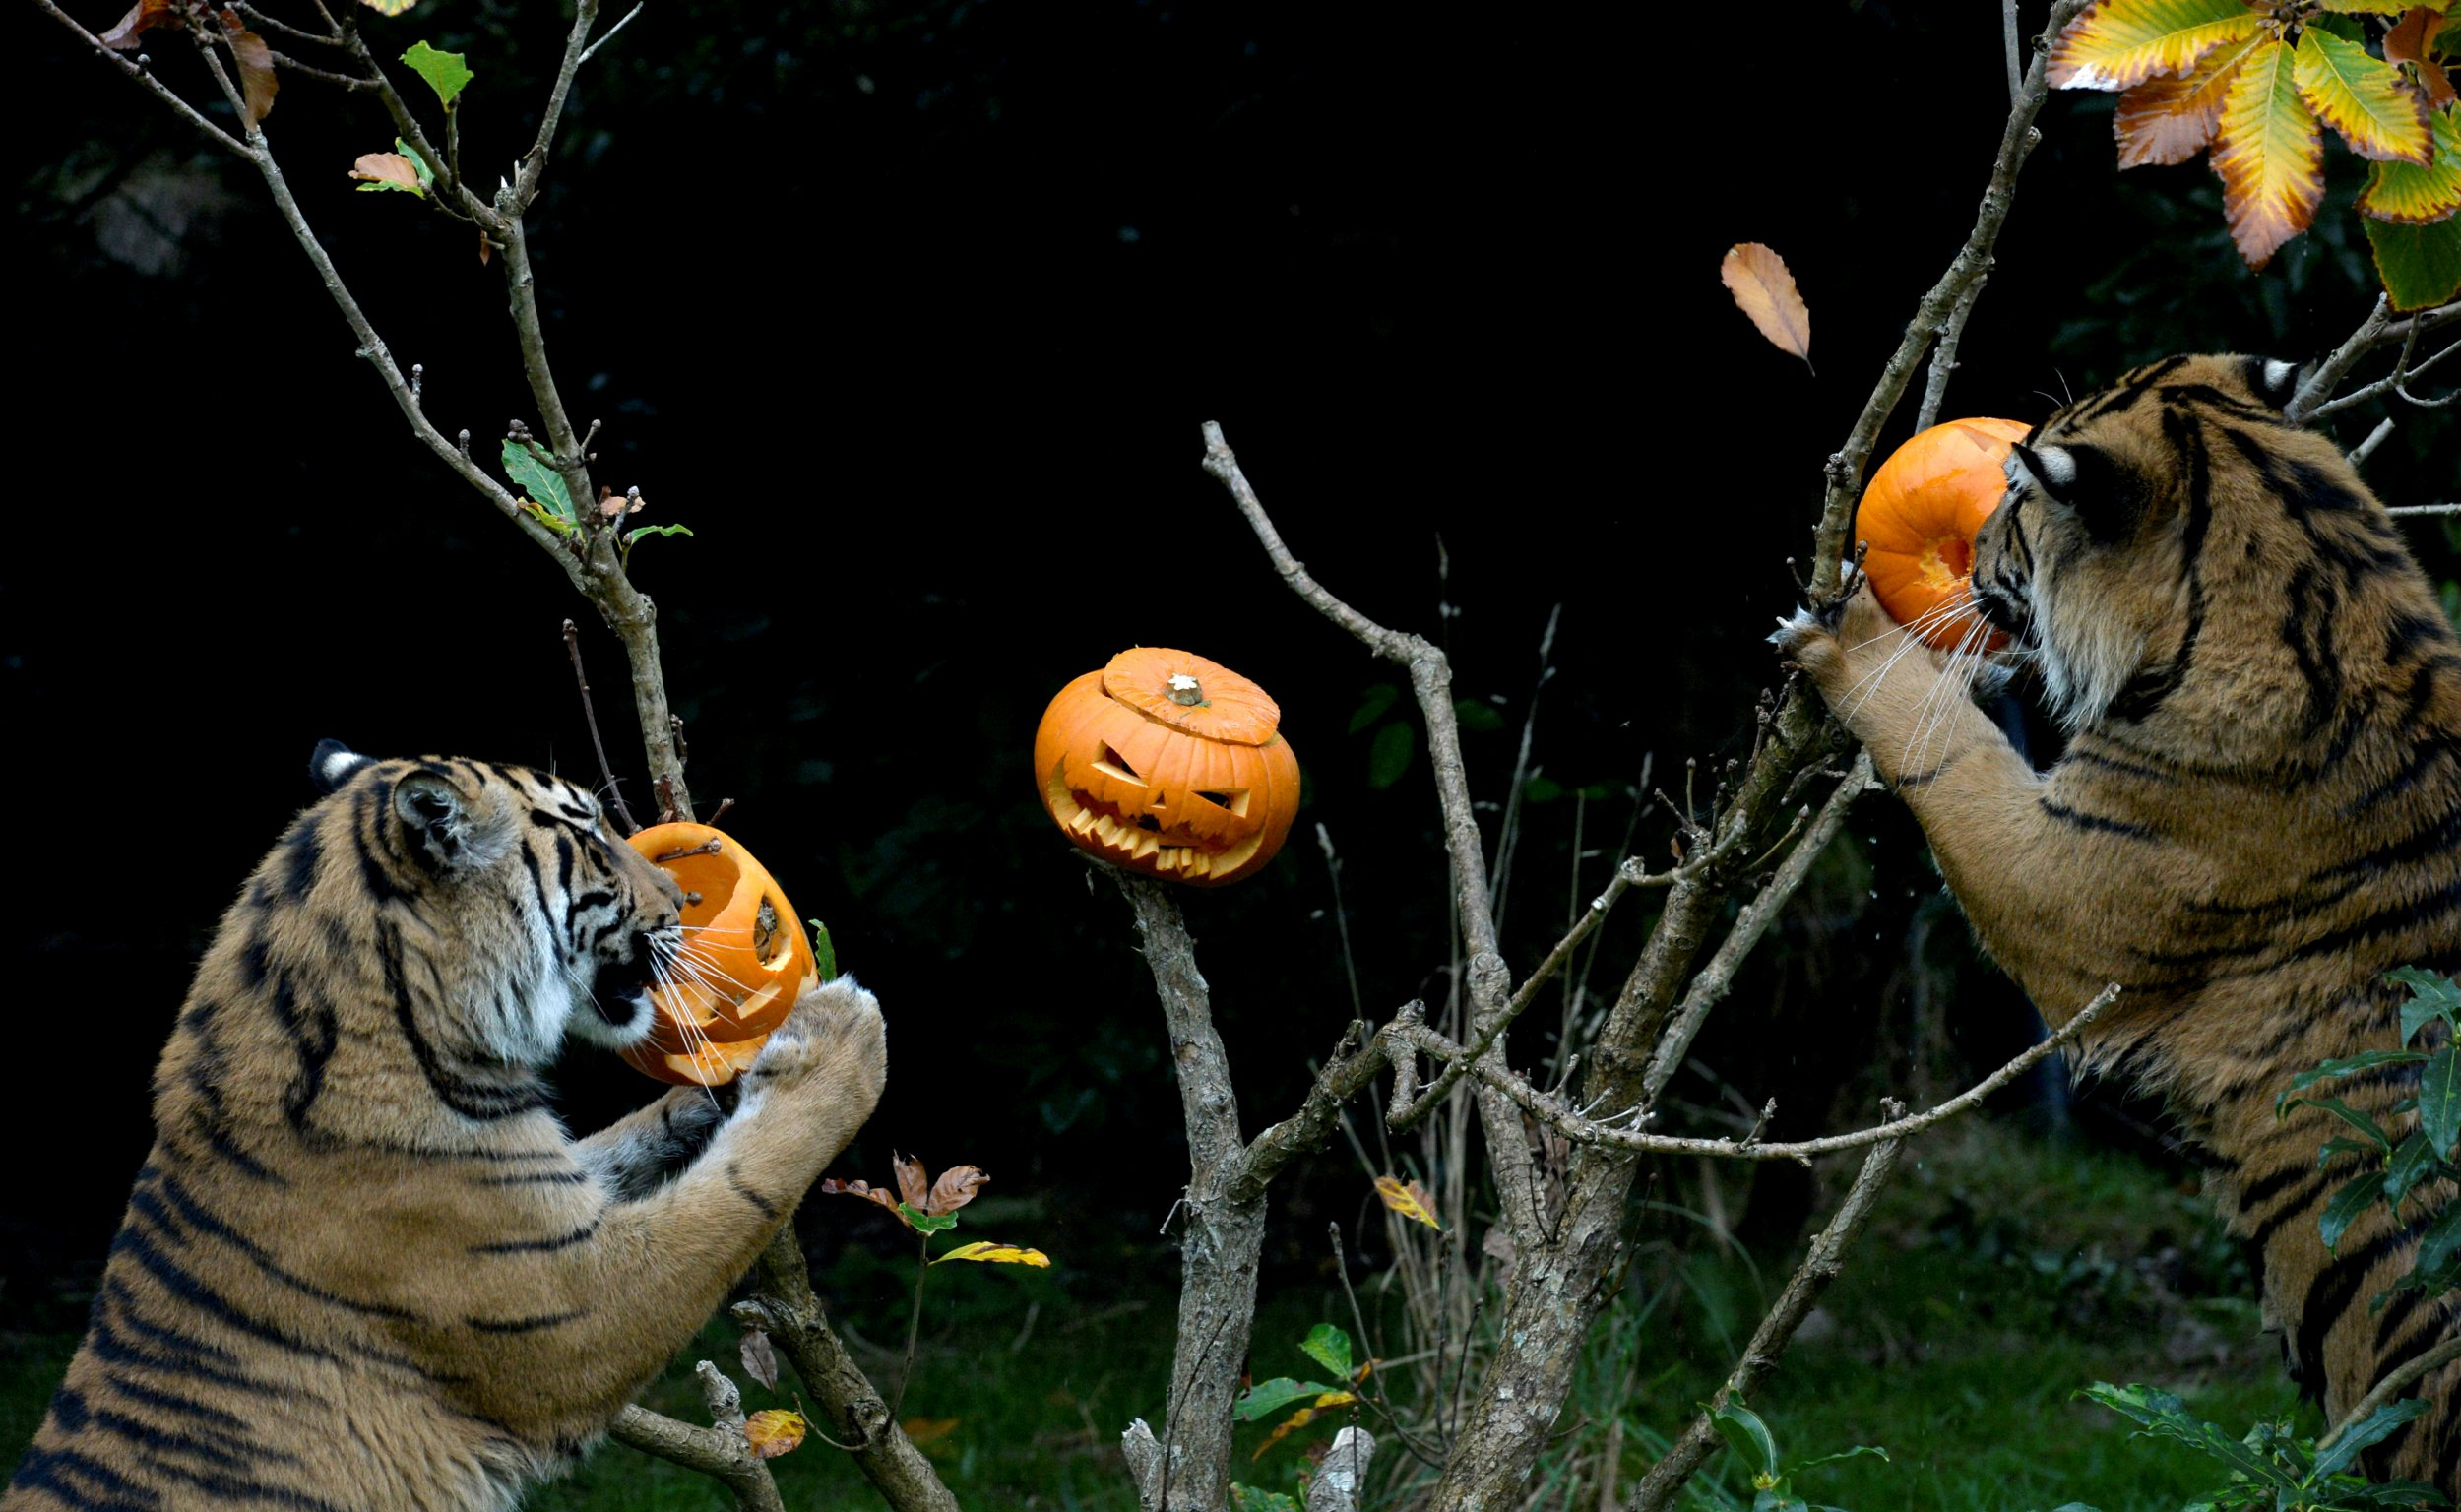 Halloween Music Playlist.Halloween Music A Spooky Party Playlist Featuring Monster Mash